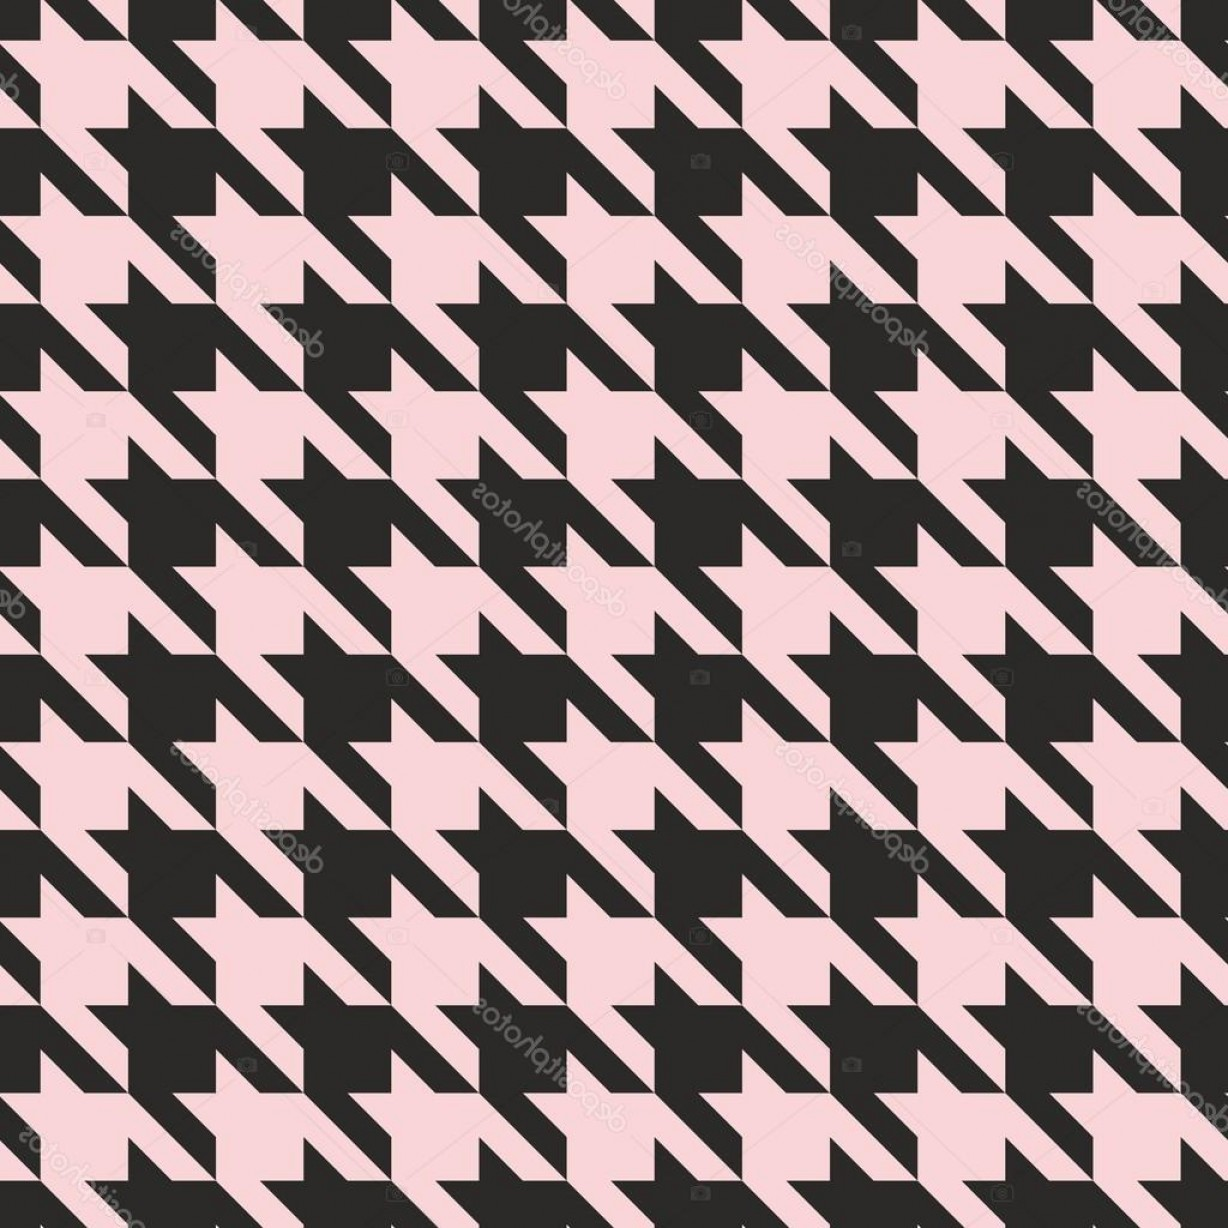 Pink And Black Houndstooth Vector: Stock Illustration Houndstooth Seamless Vector Pastel Pink